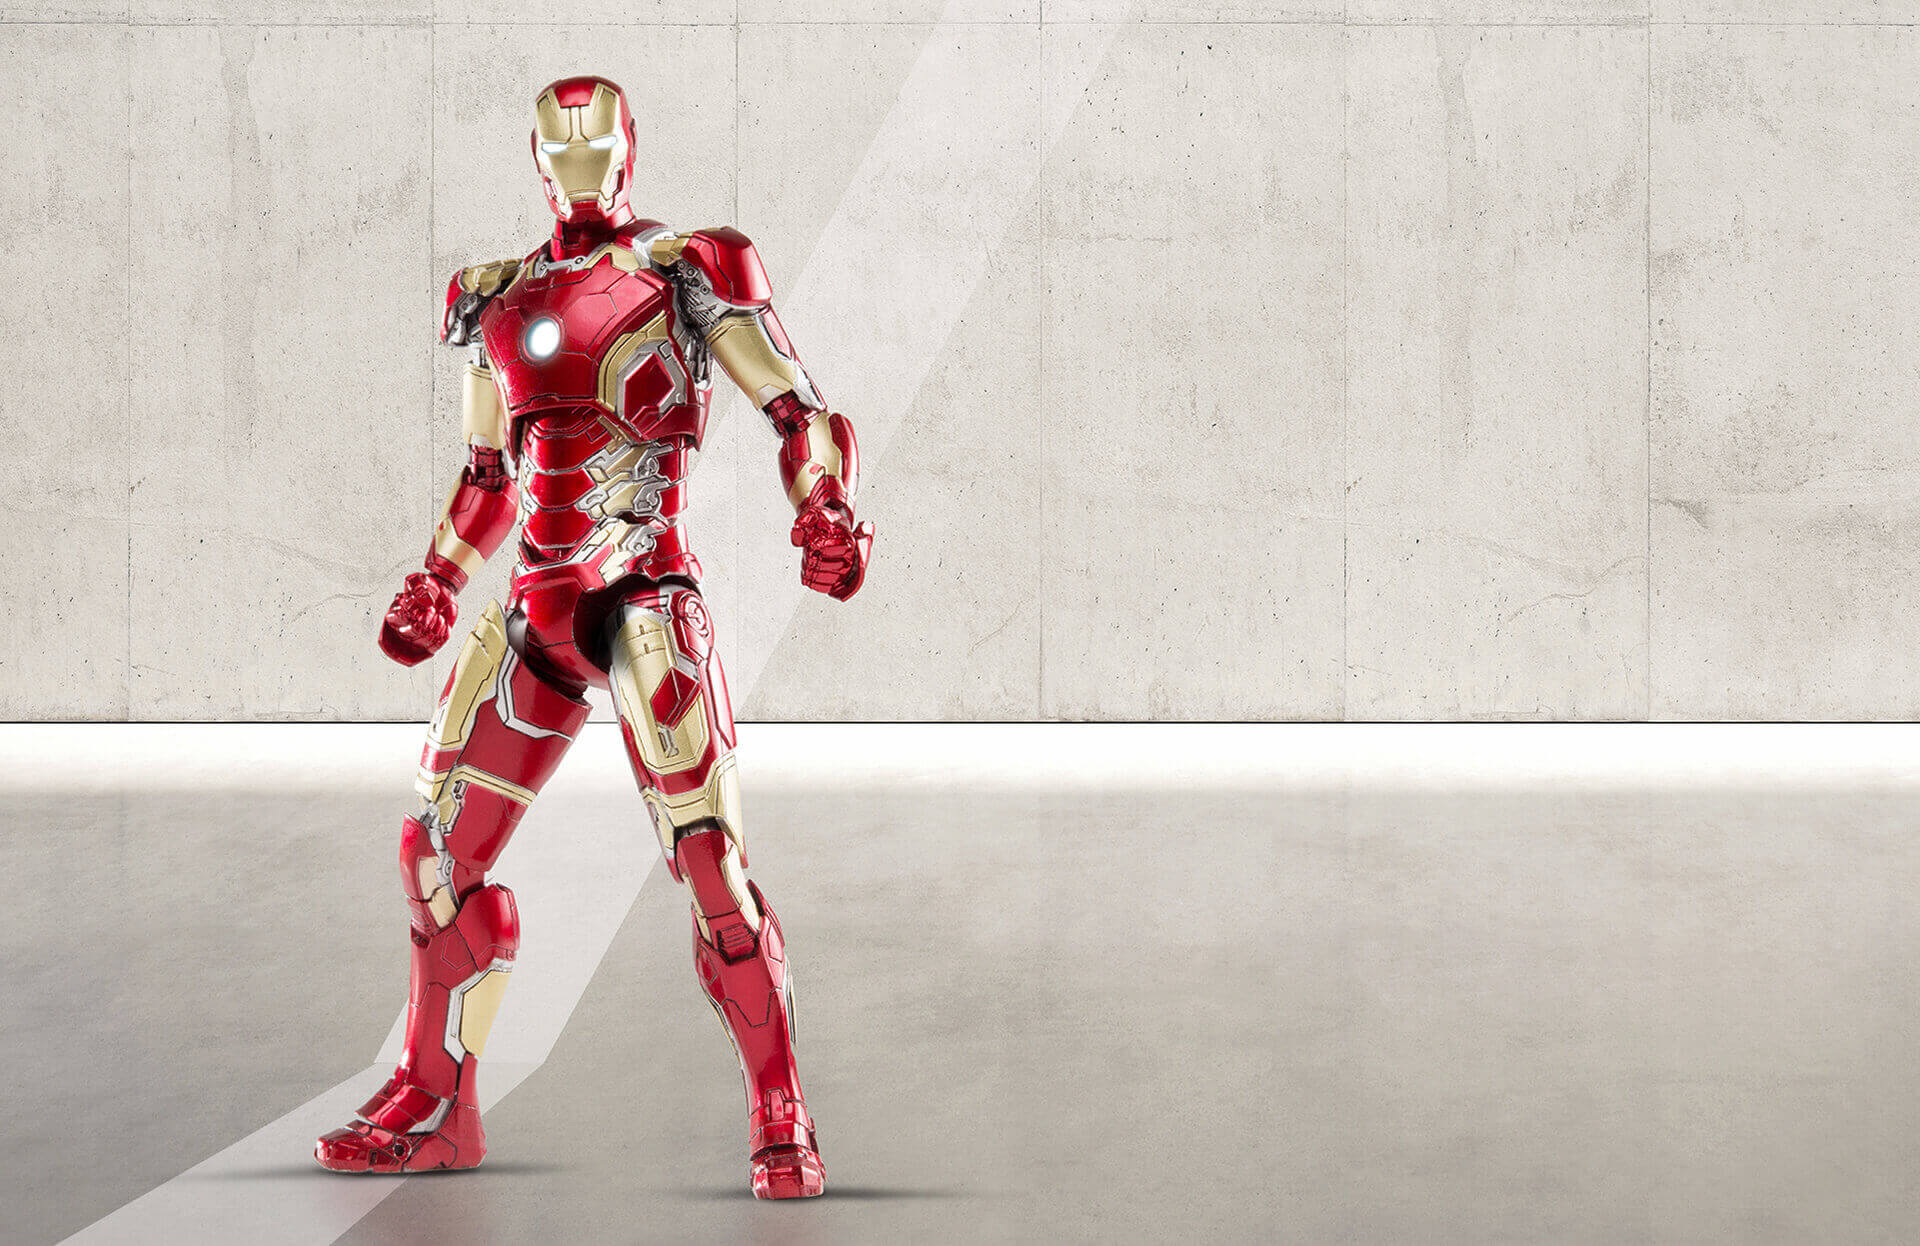 Diecast 1/12 Scale Iron Man Mark 43 by Comicave Studios ...